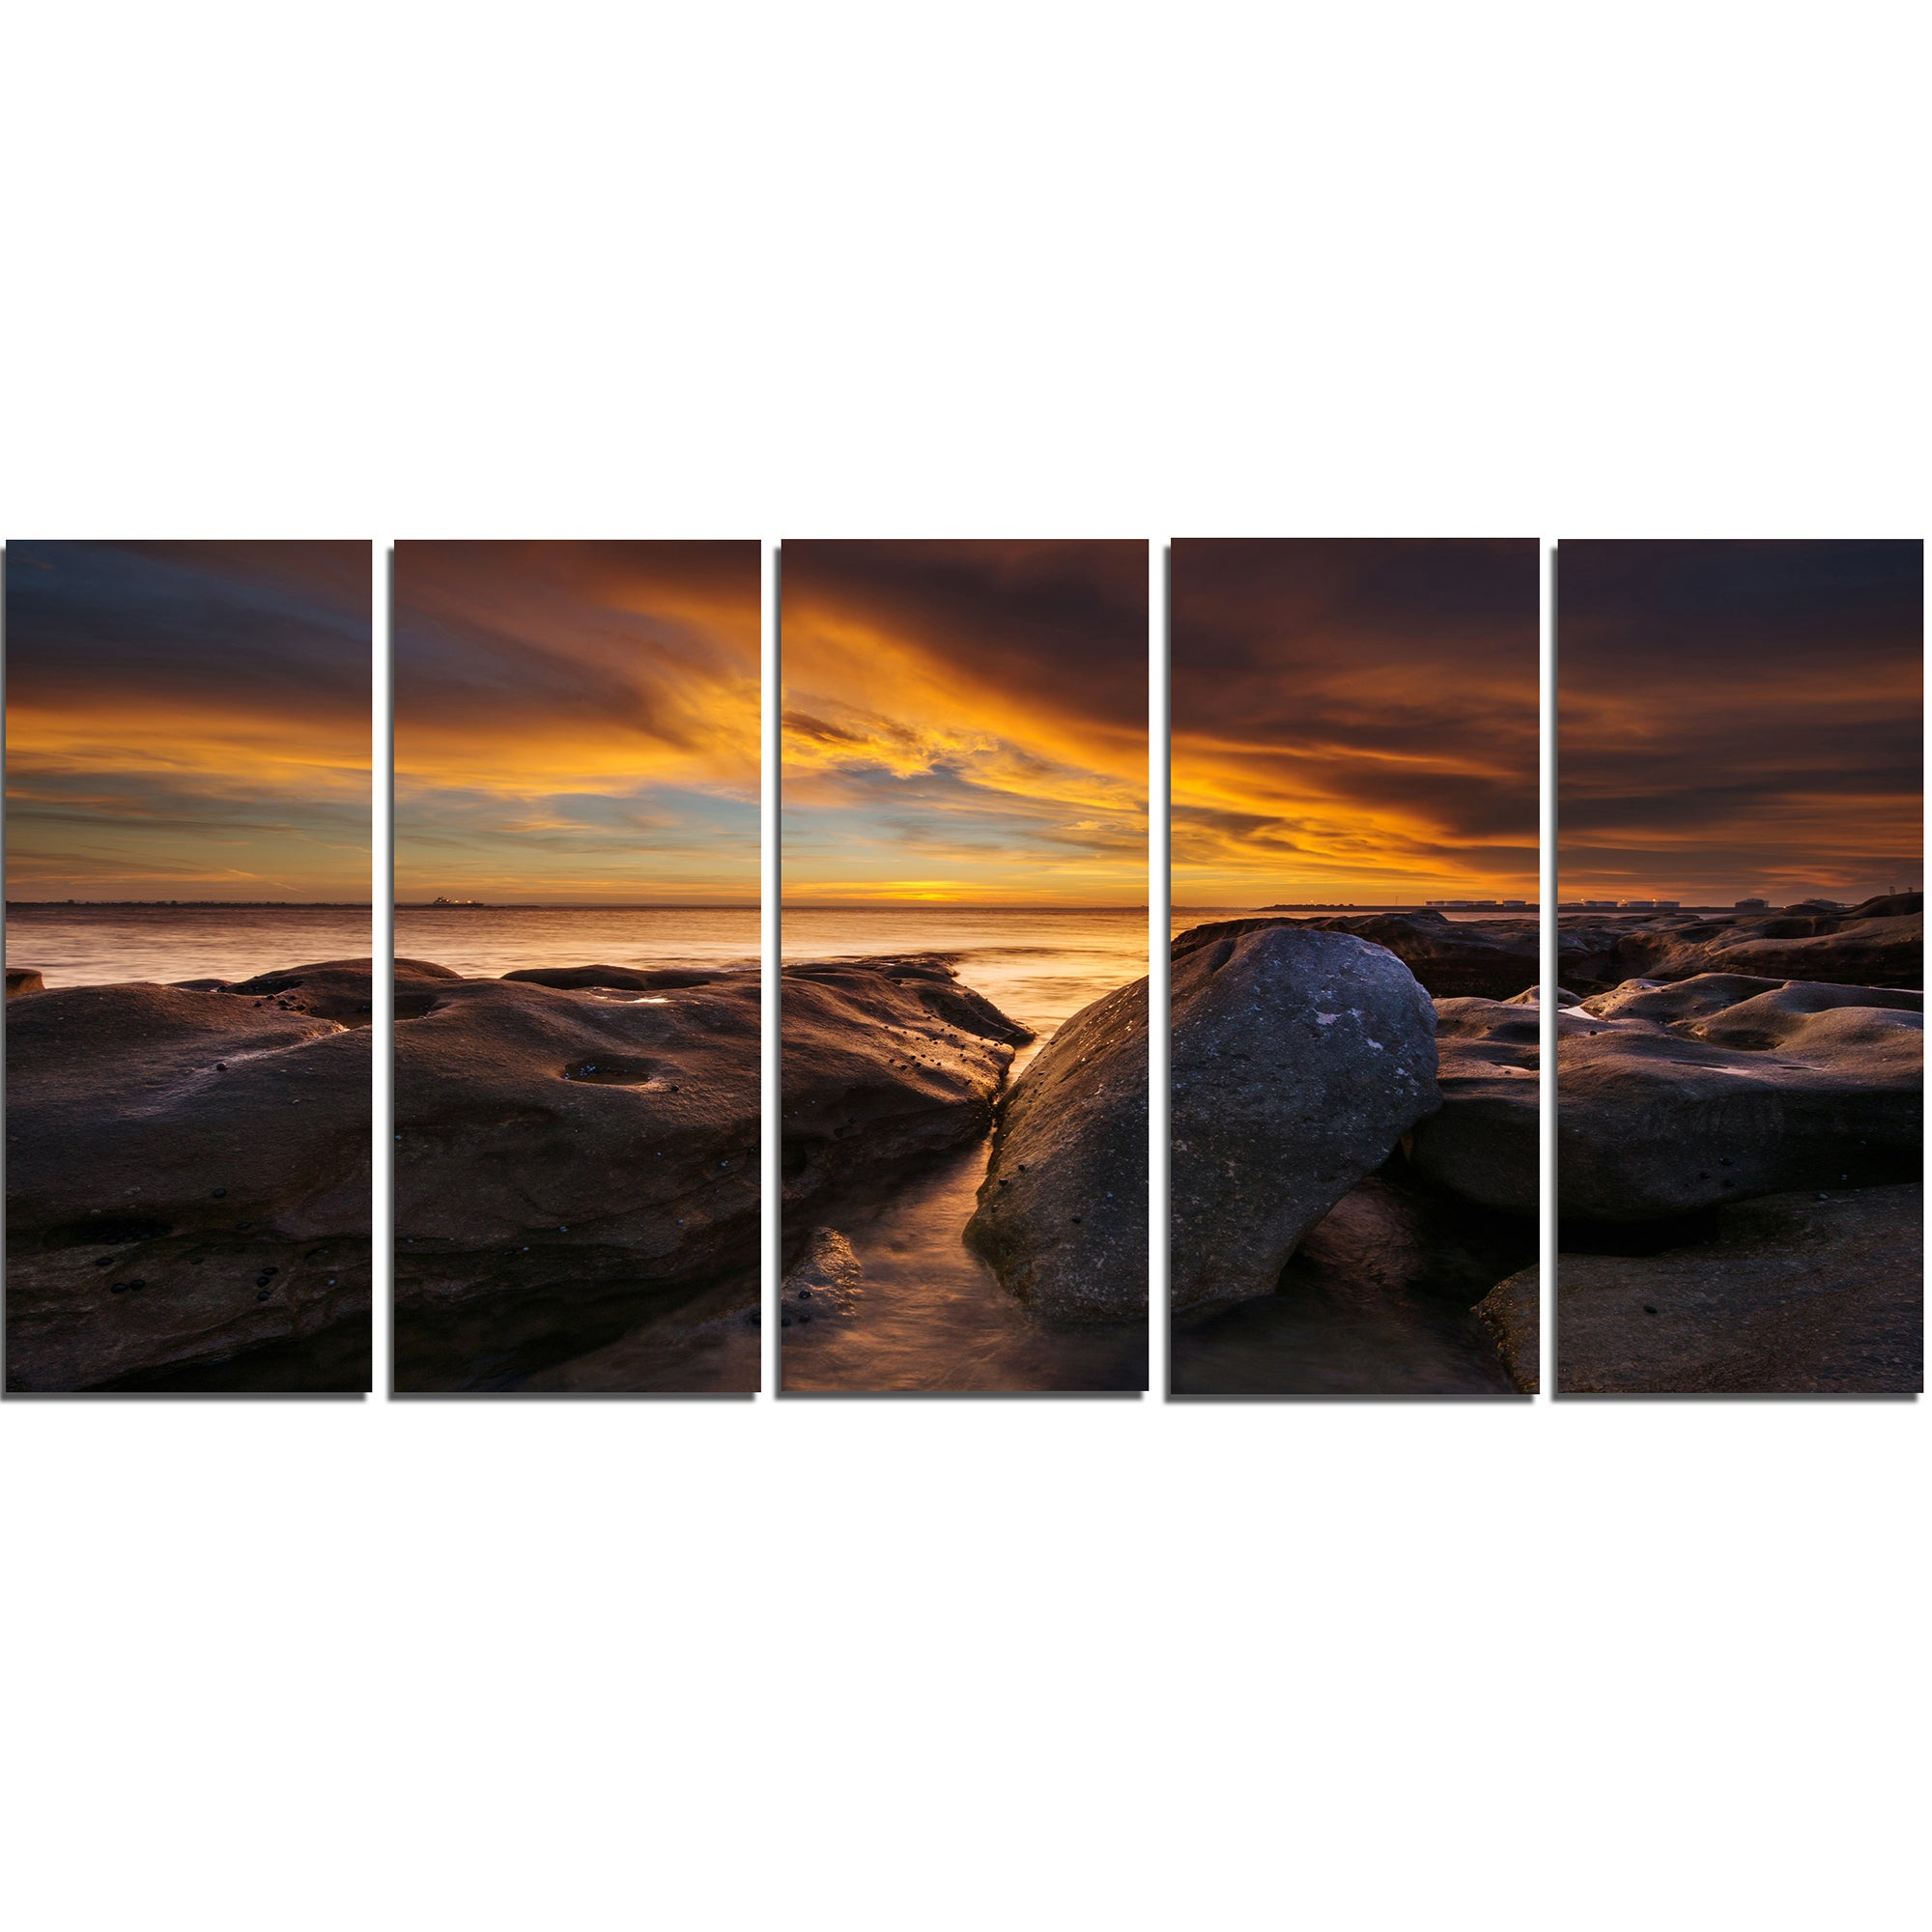 La Perhouse Beach Sydney Seashore Canvas Wall Artwork Print Overstock 12303026